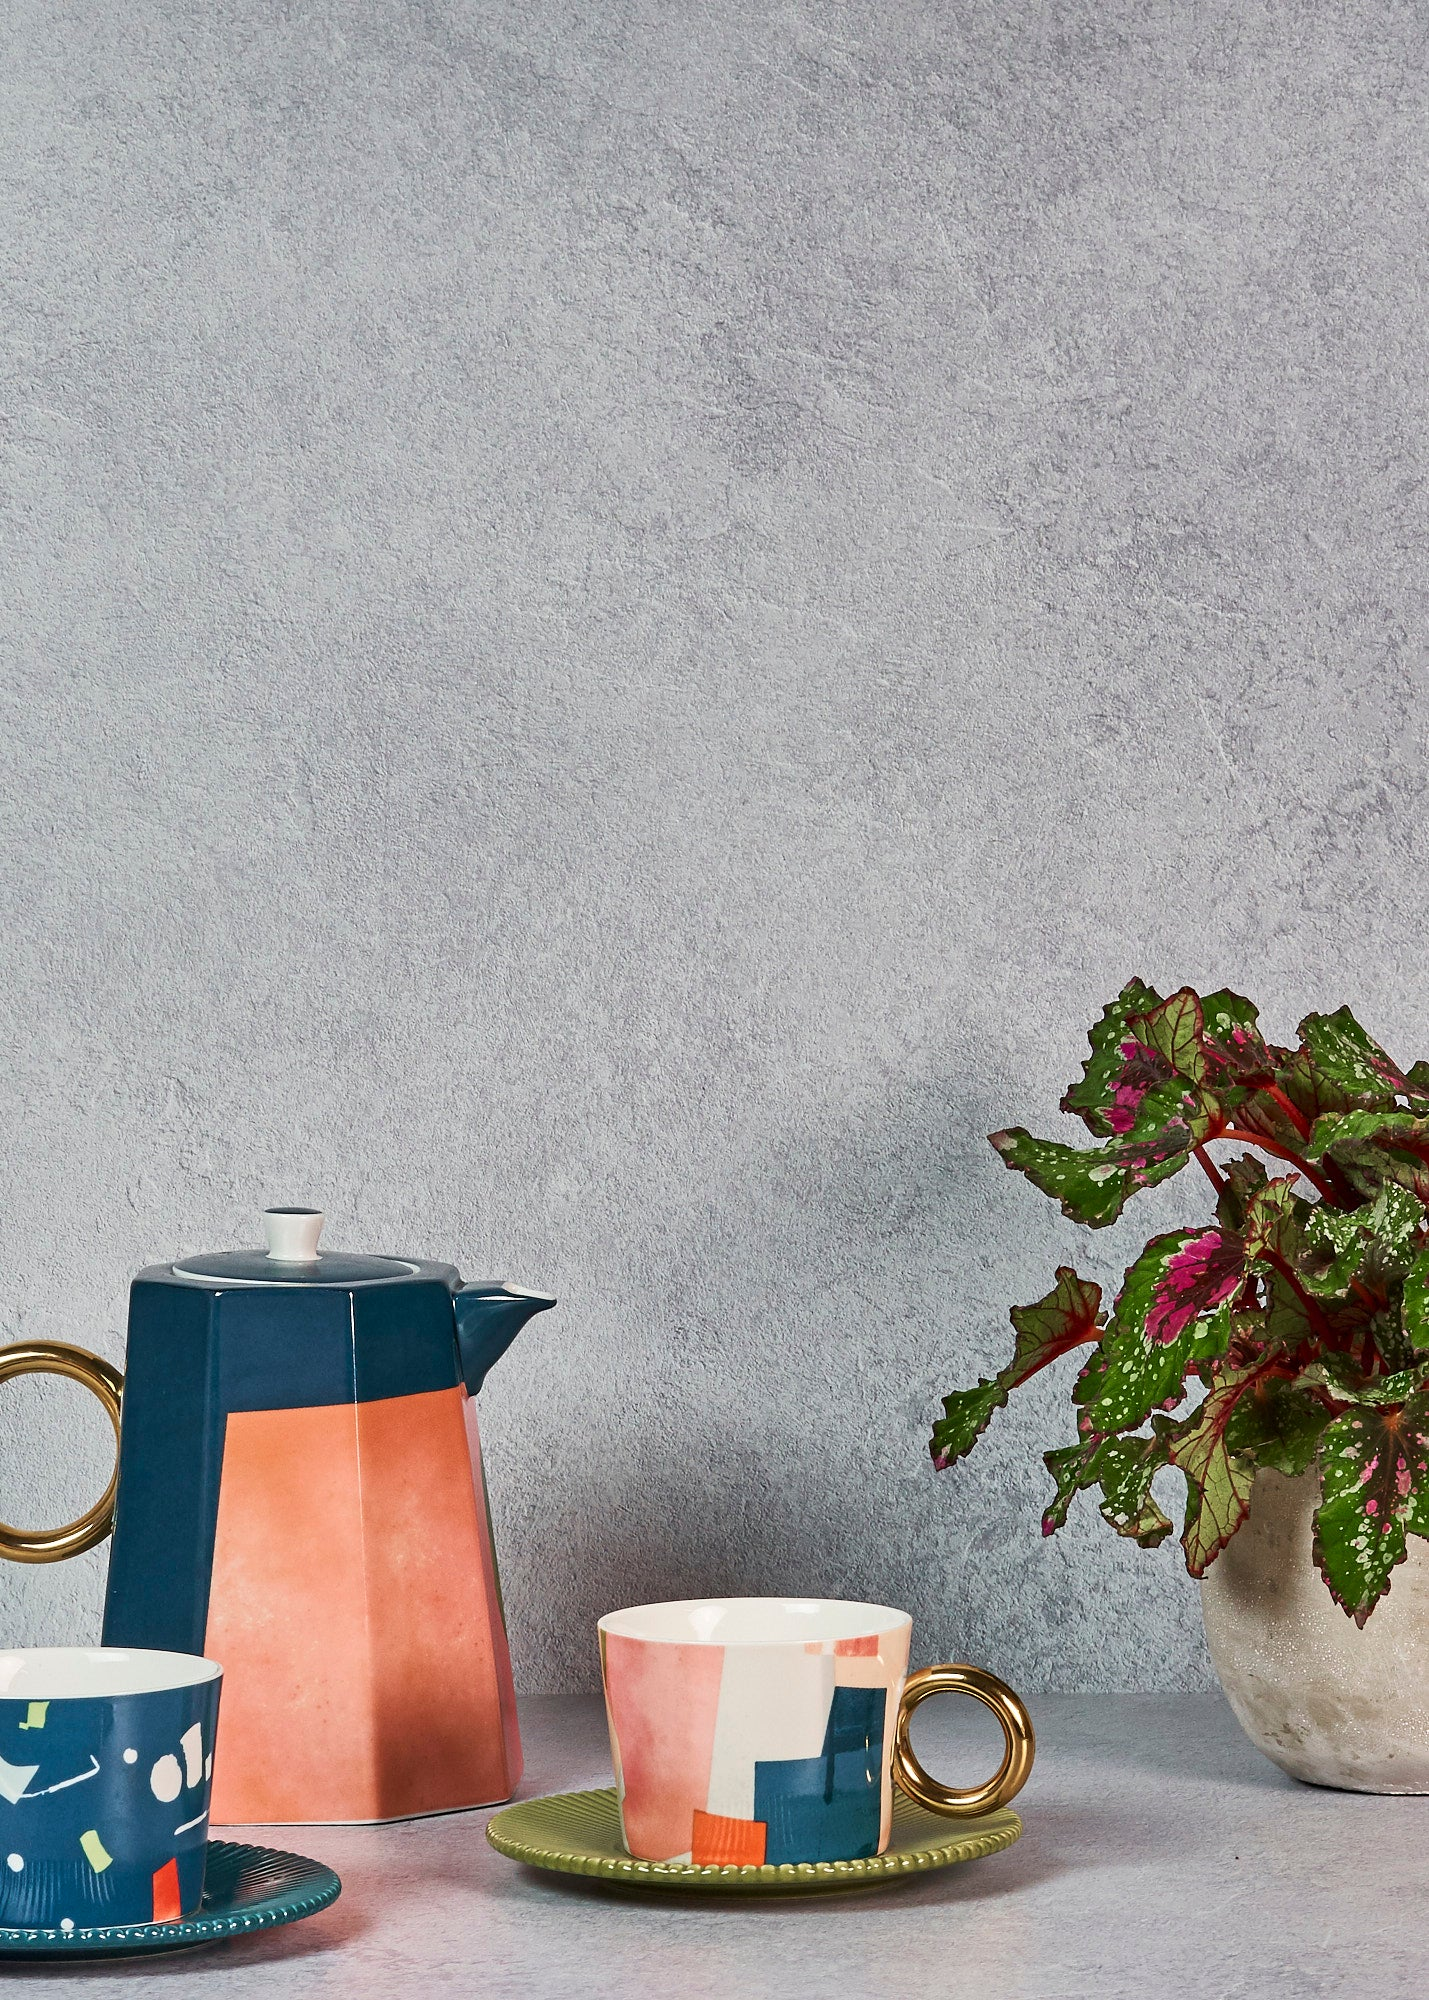 Concrete vinyl backdrop as wall and floor for still life